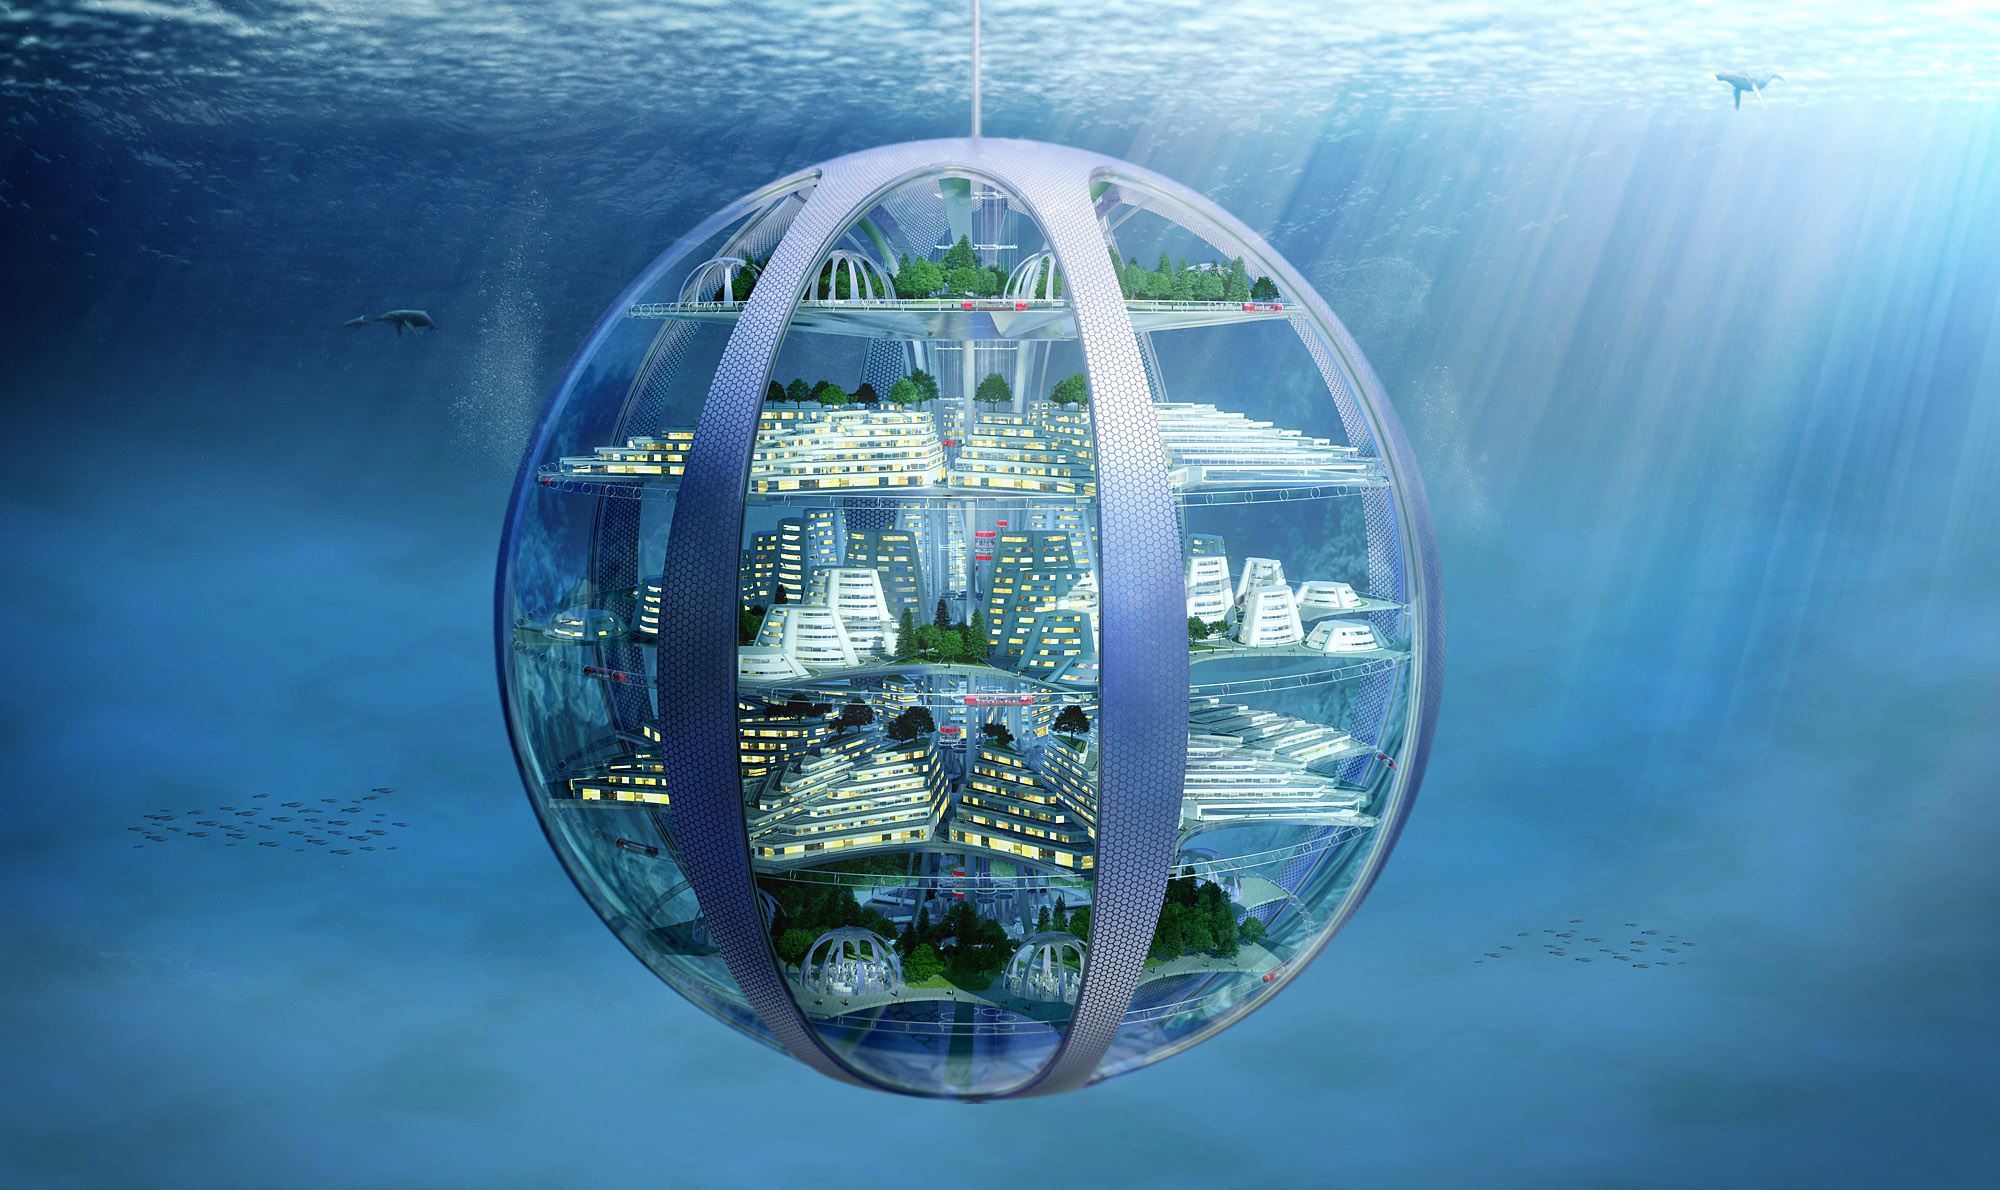 Underwater cities: are likely to become a reality – using the water itself to create breathable atmospheres and generating hydrogen fuel through the process